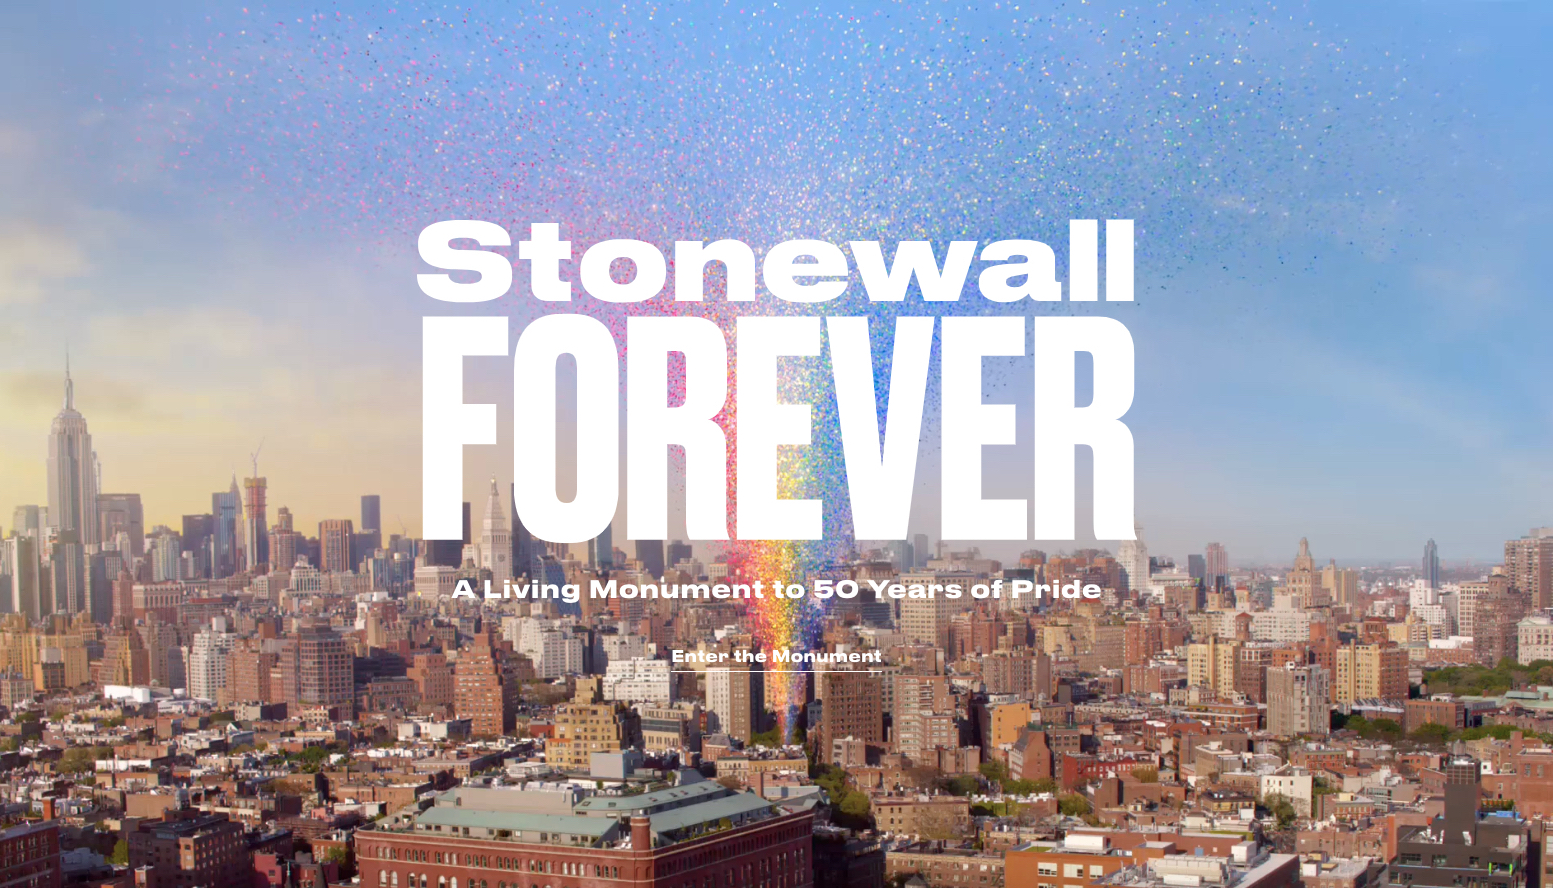 STONEWALL FOREVER - Stonewall Forever is a beautiful website that serves as